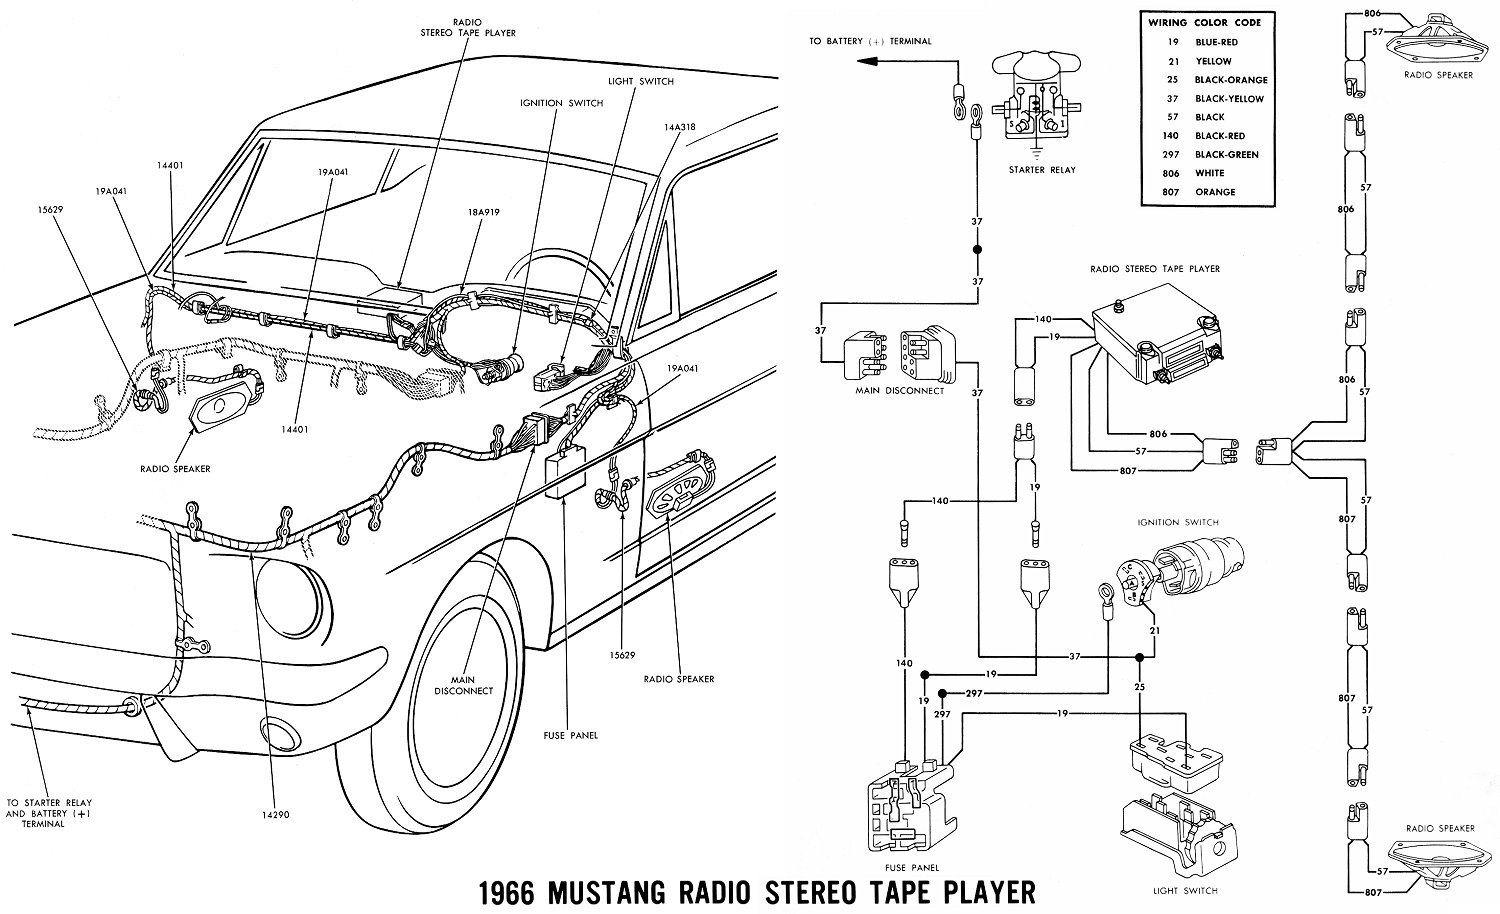 Ford Power Seat Wiring Diagram Wirning Diagrams likewise 2011 04 01 archive furthermore 83nf8 Chevrolet Silverado 1500 1994 Chevy Silverado 1500 4x4 1500 together with Ct70 Wiring Diagrams besides 1964 Mustang Wiring Diagrams Average Joe Restoration. on 1972 buick fuse box diagram